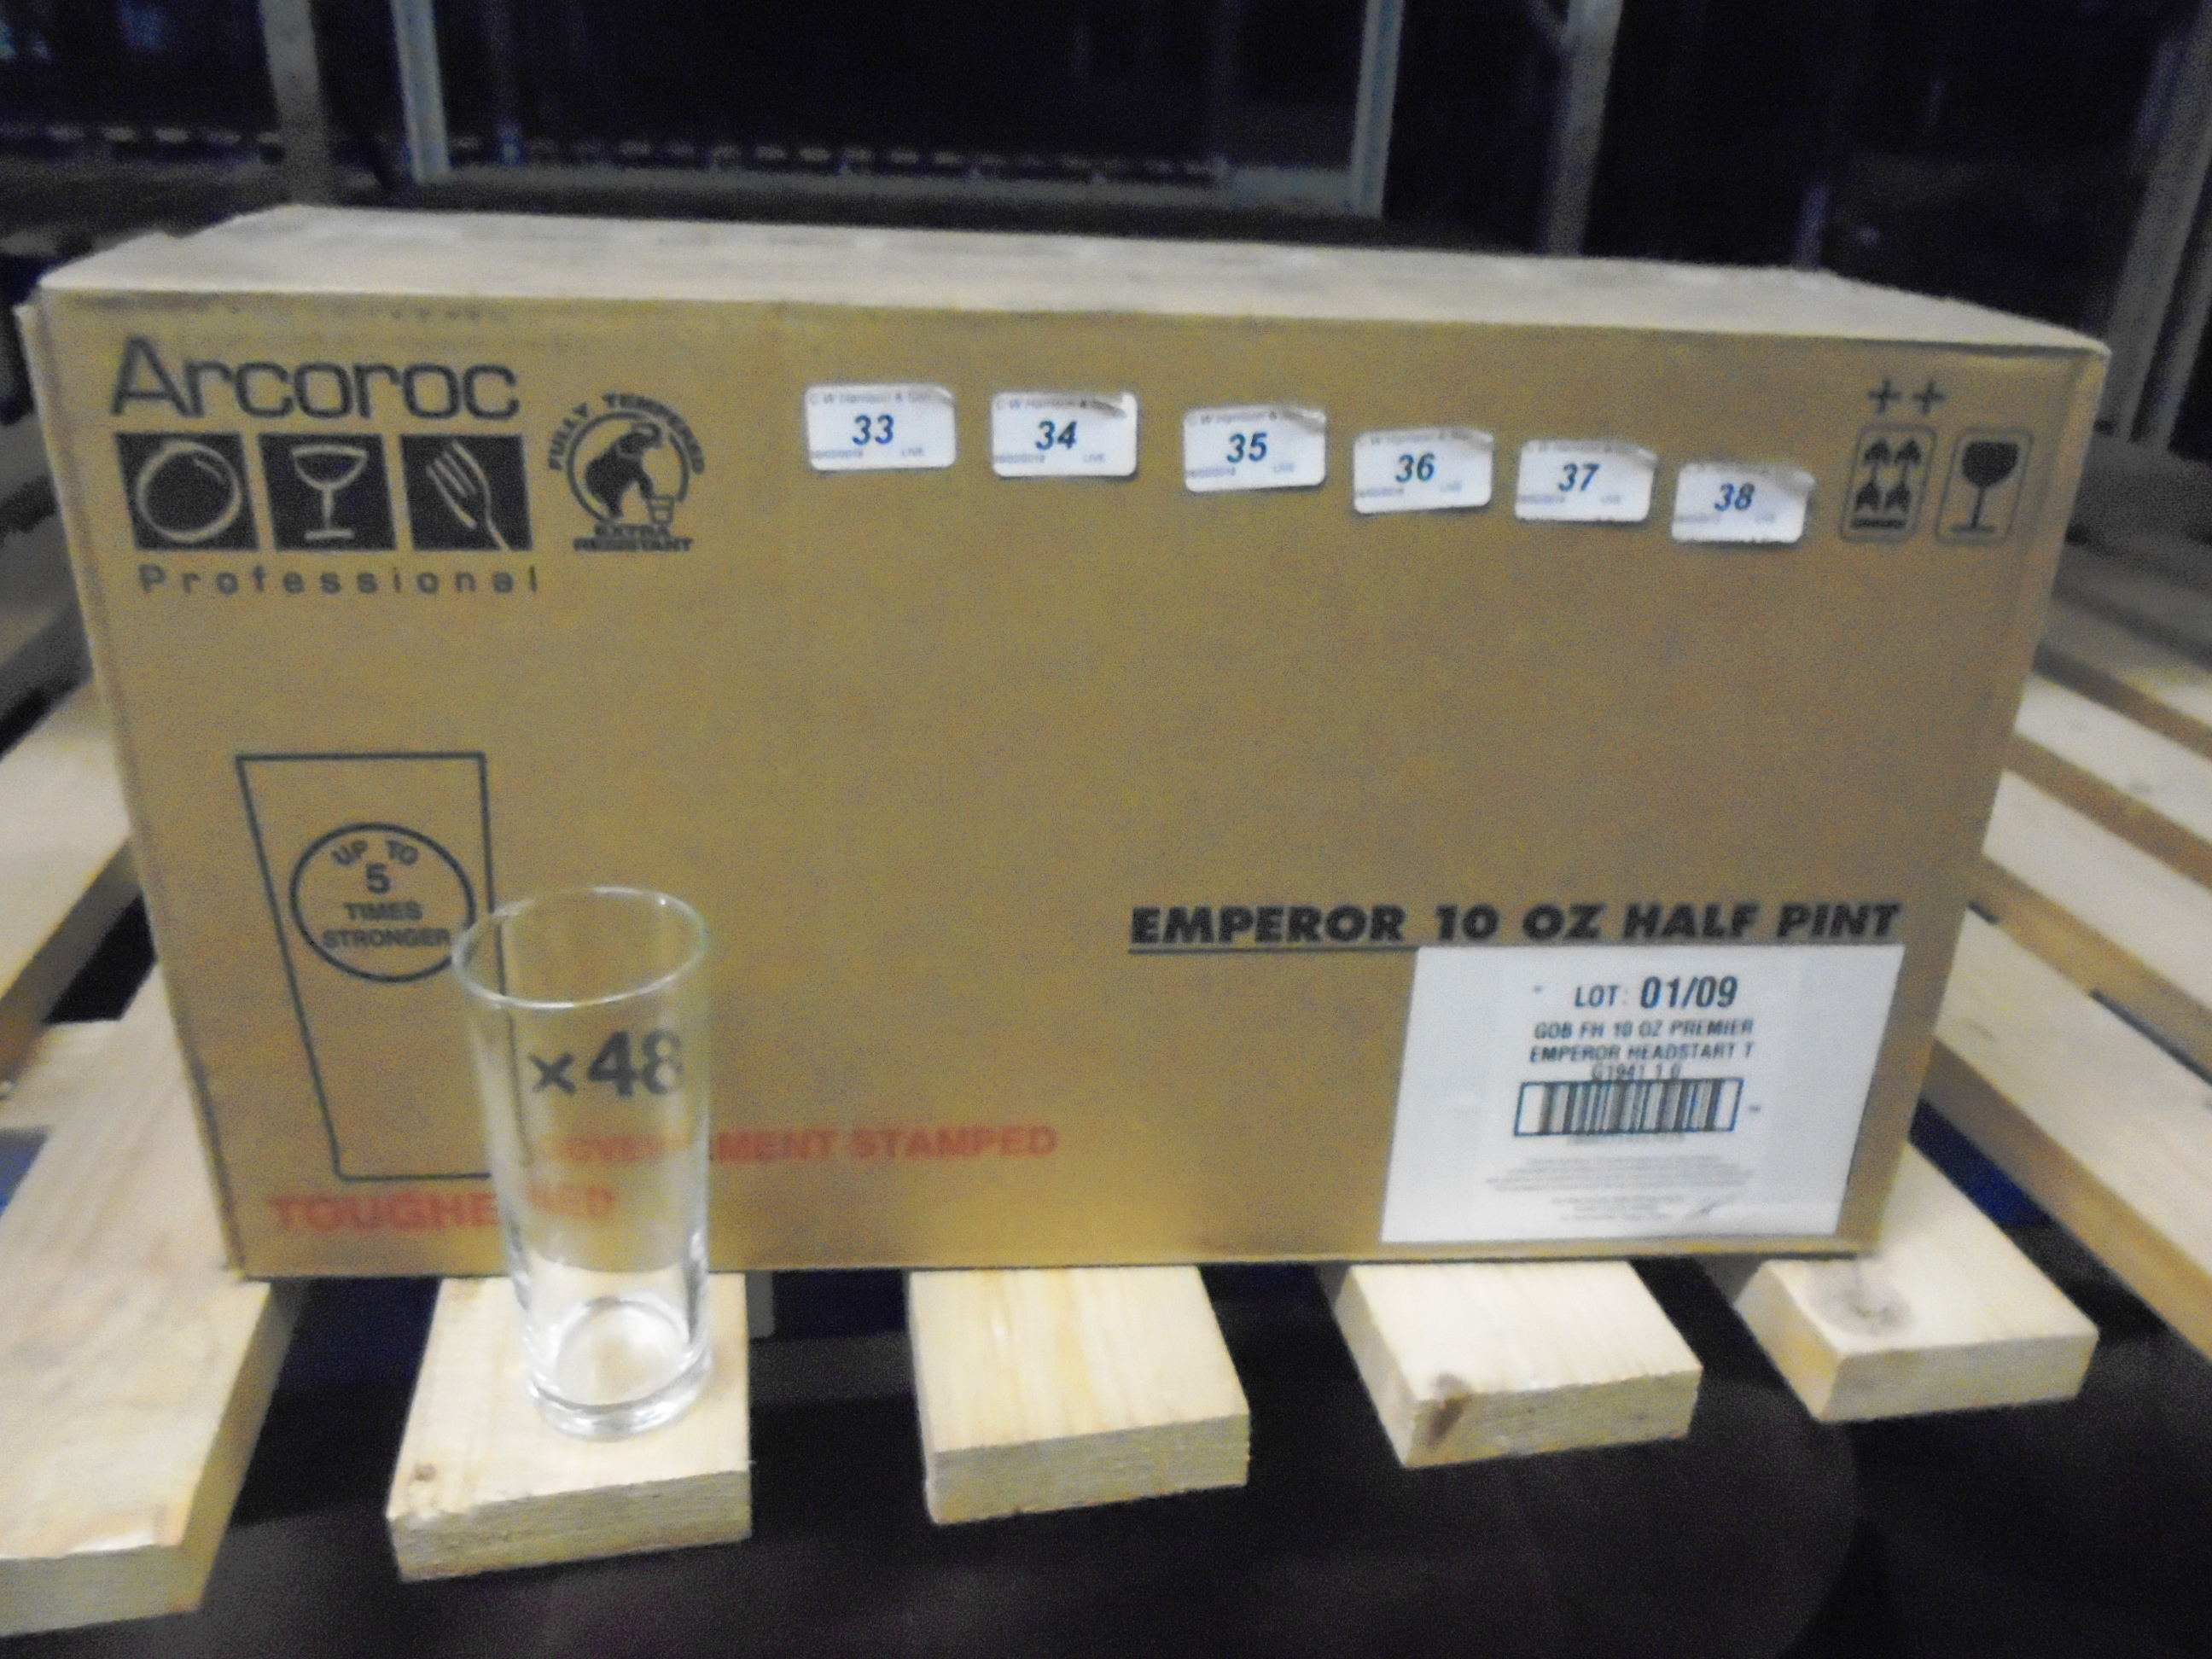 Lot 35 - 96 x Arcoroc Emperor half pint glasses (2 x outer boxes)